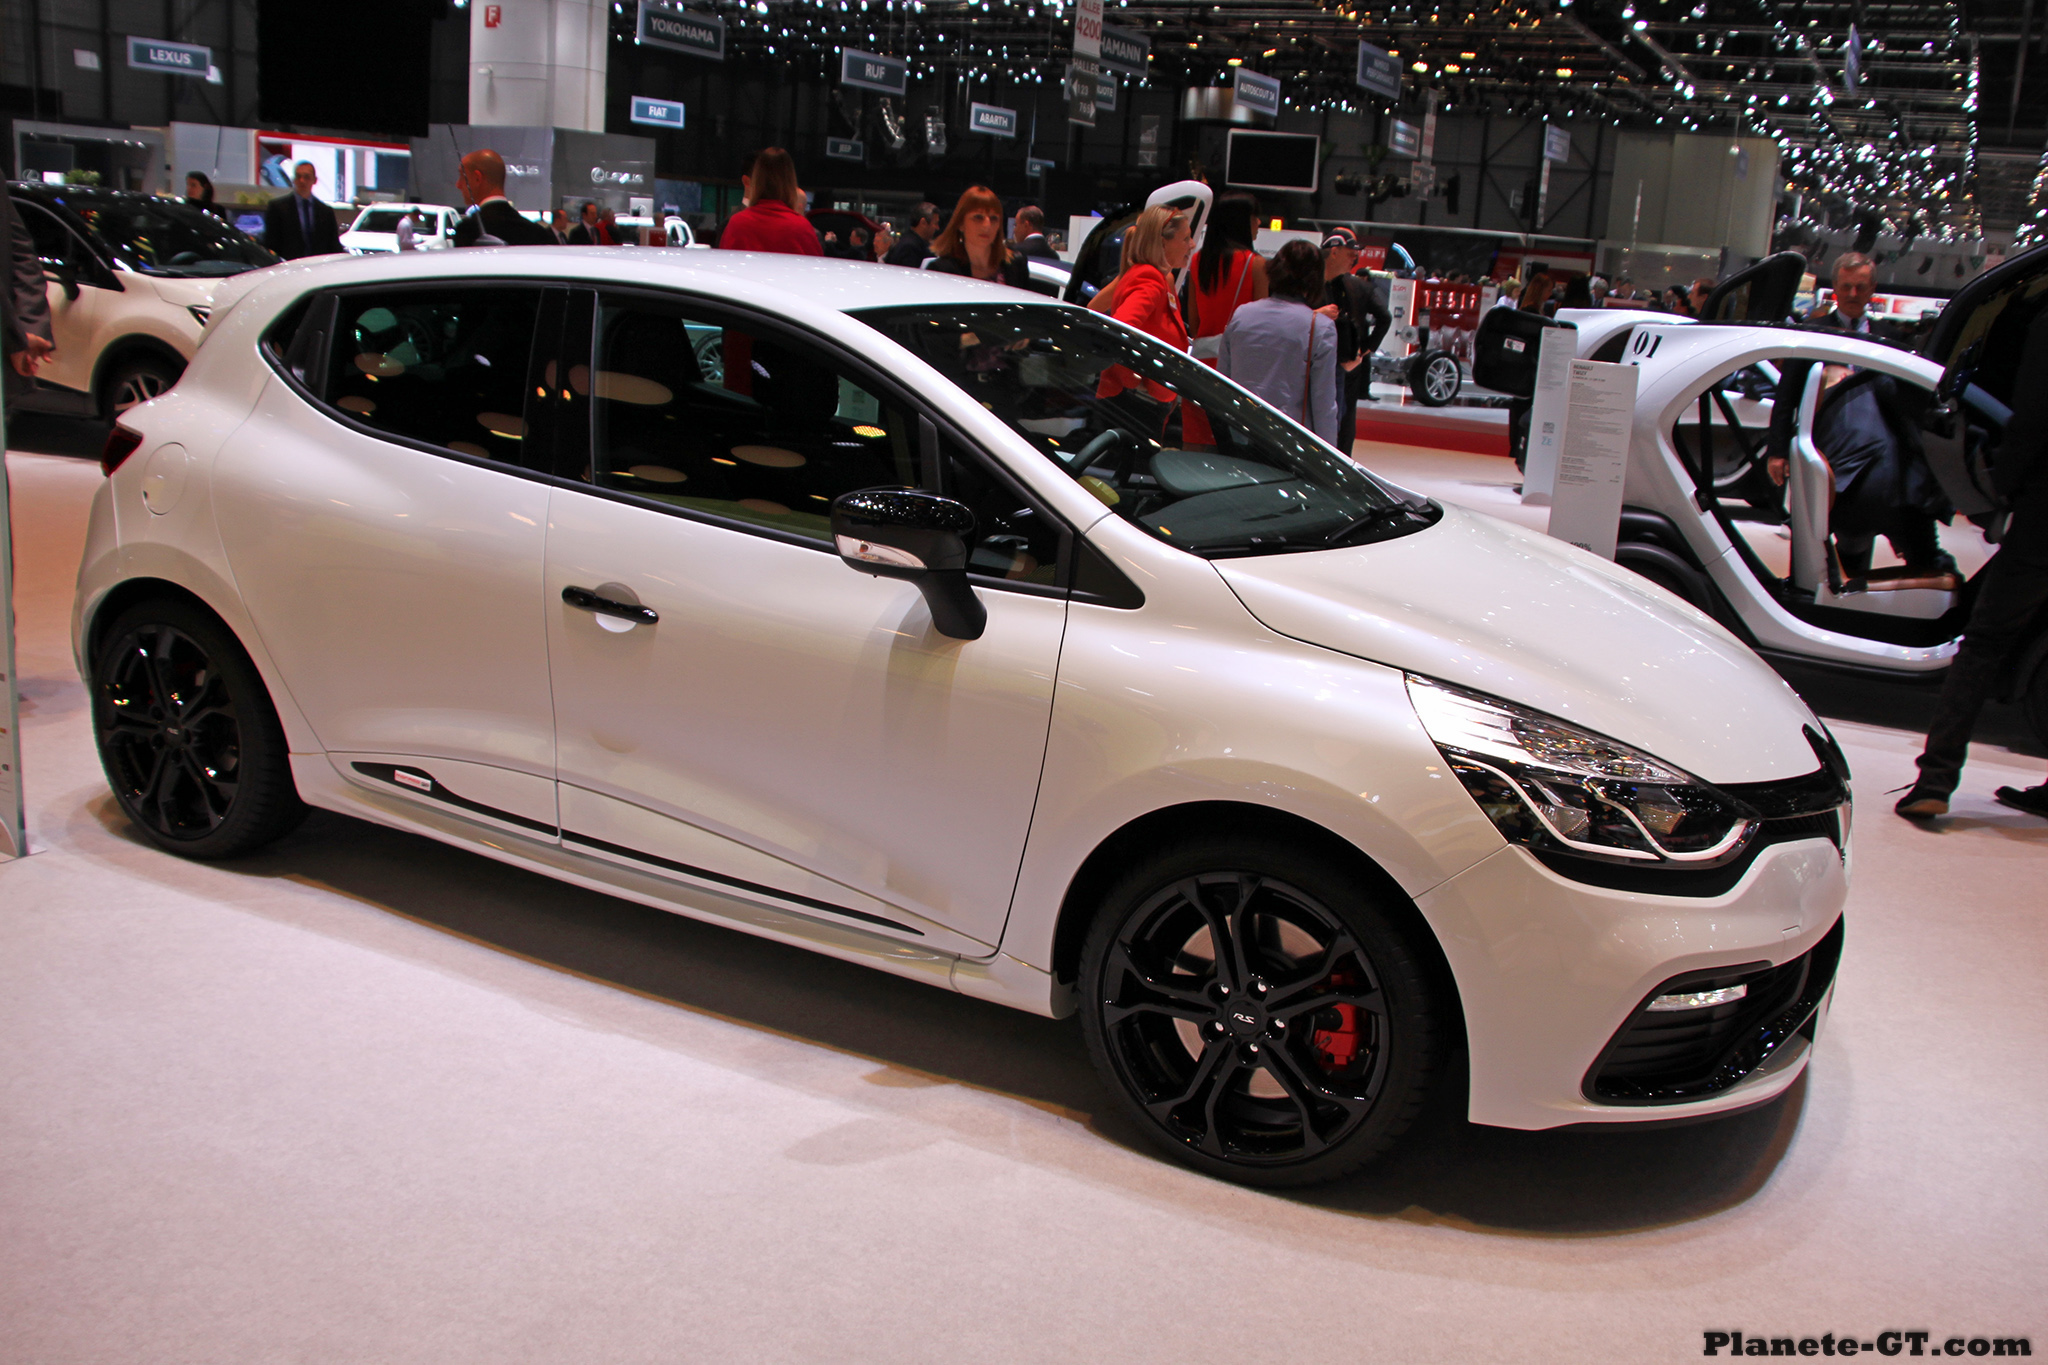 Gen 232 Ve 2014 La Renault Clio 4 Rs Monaco Gp En Images